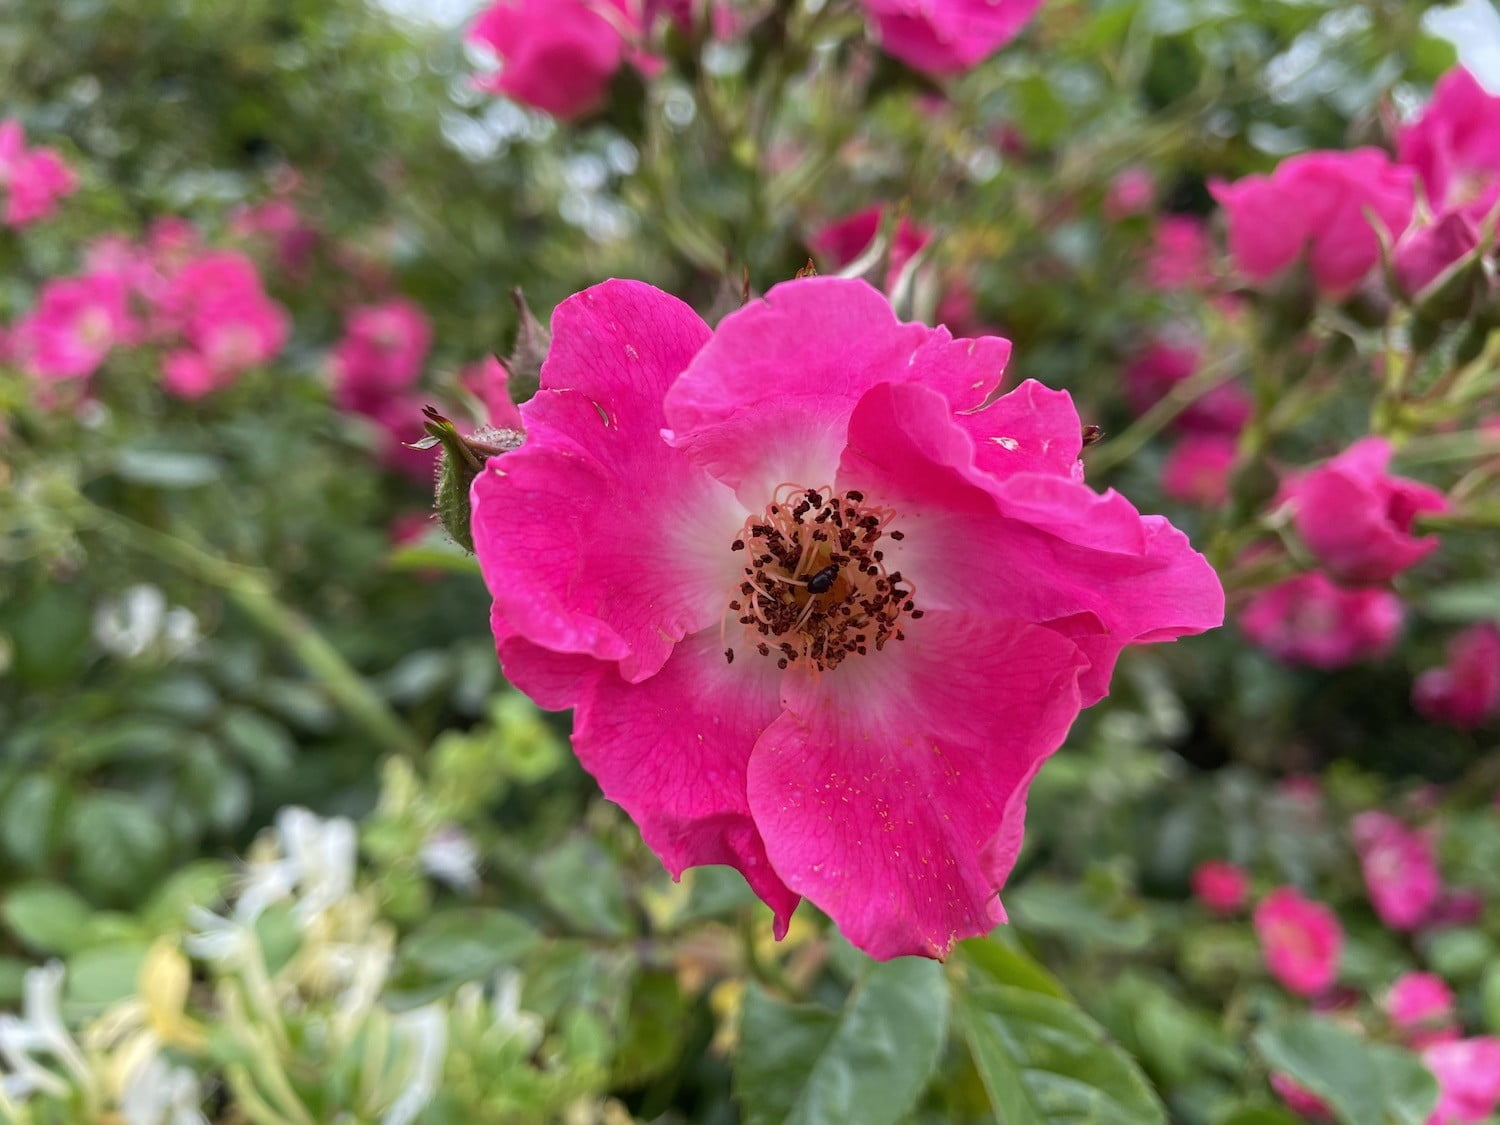 Photo of a pink flower taken with the iPhone 12 Pro